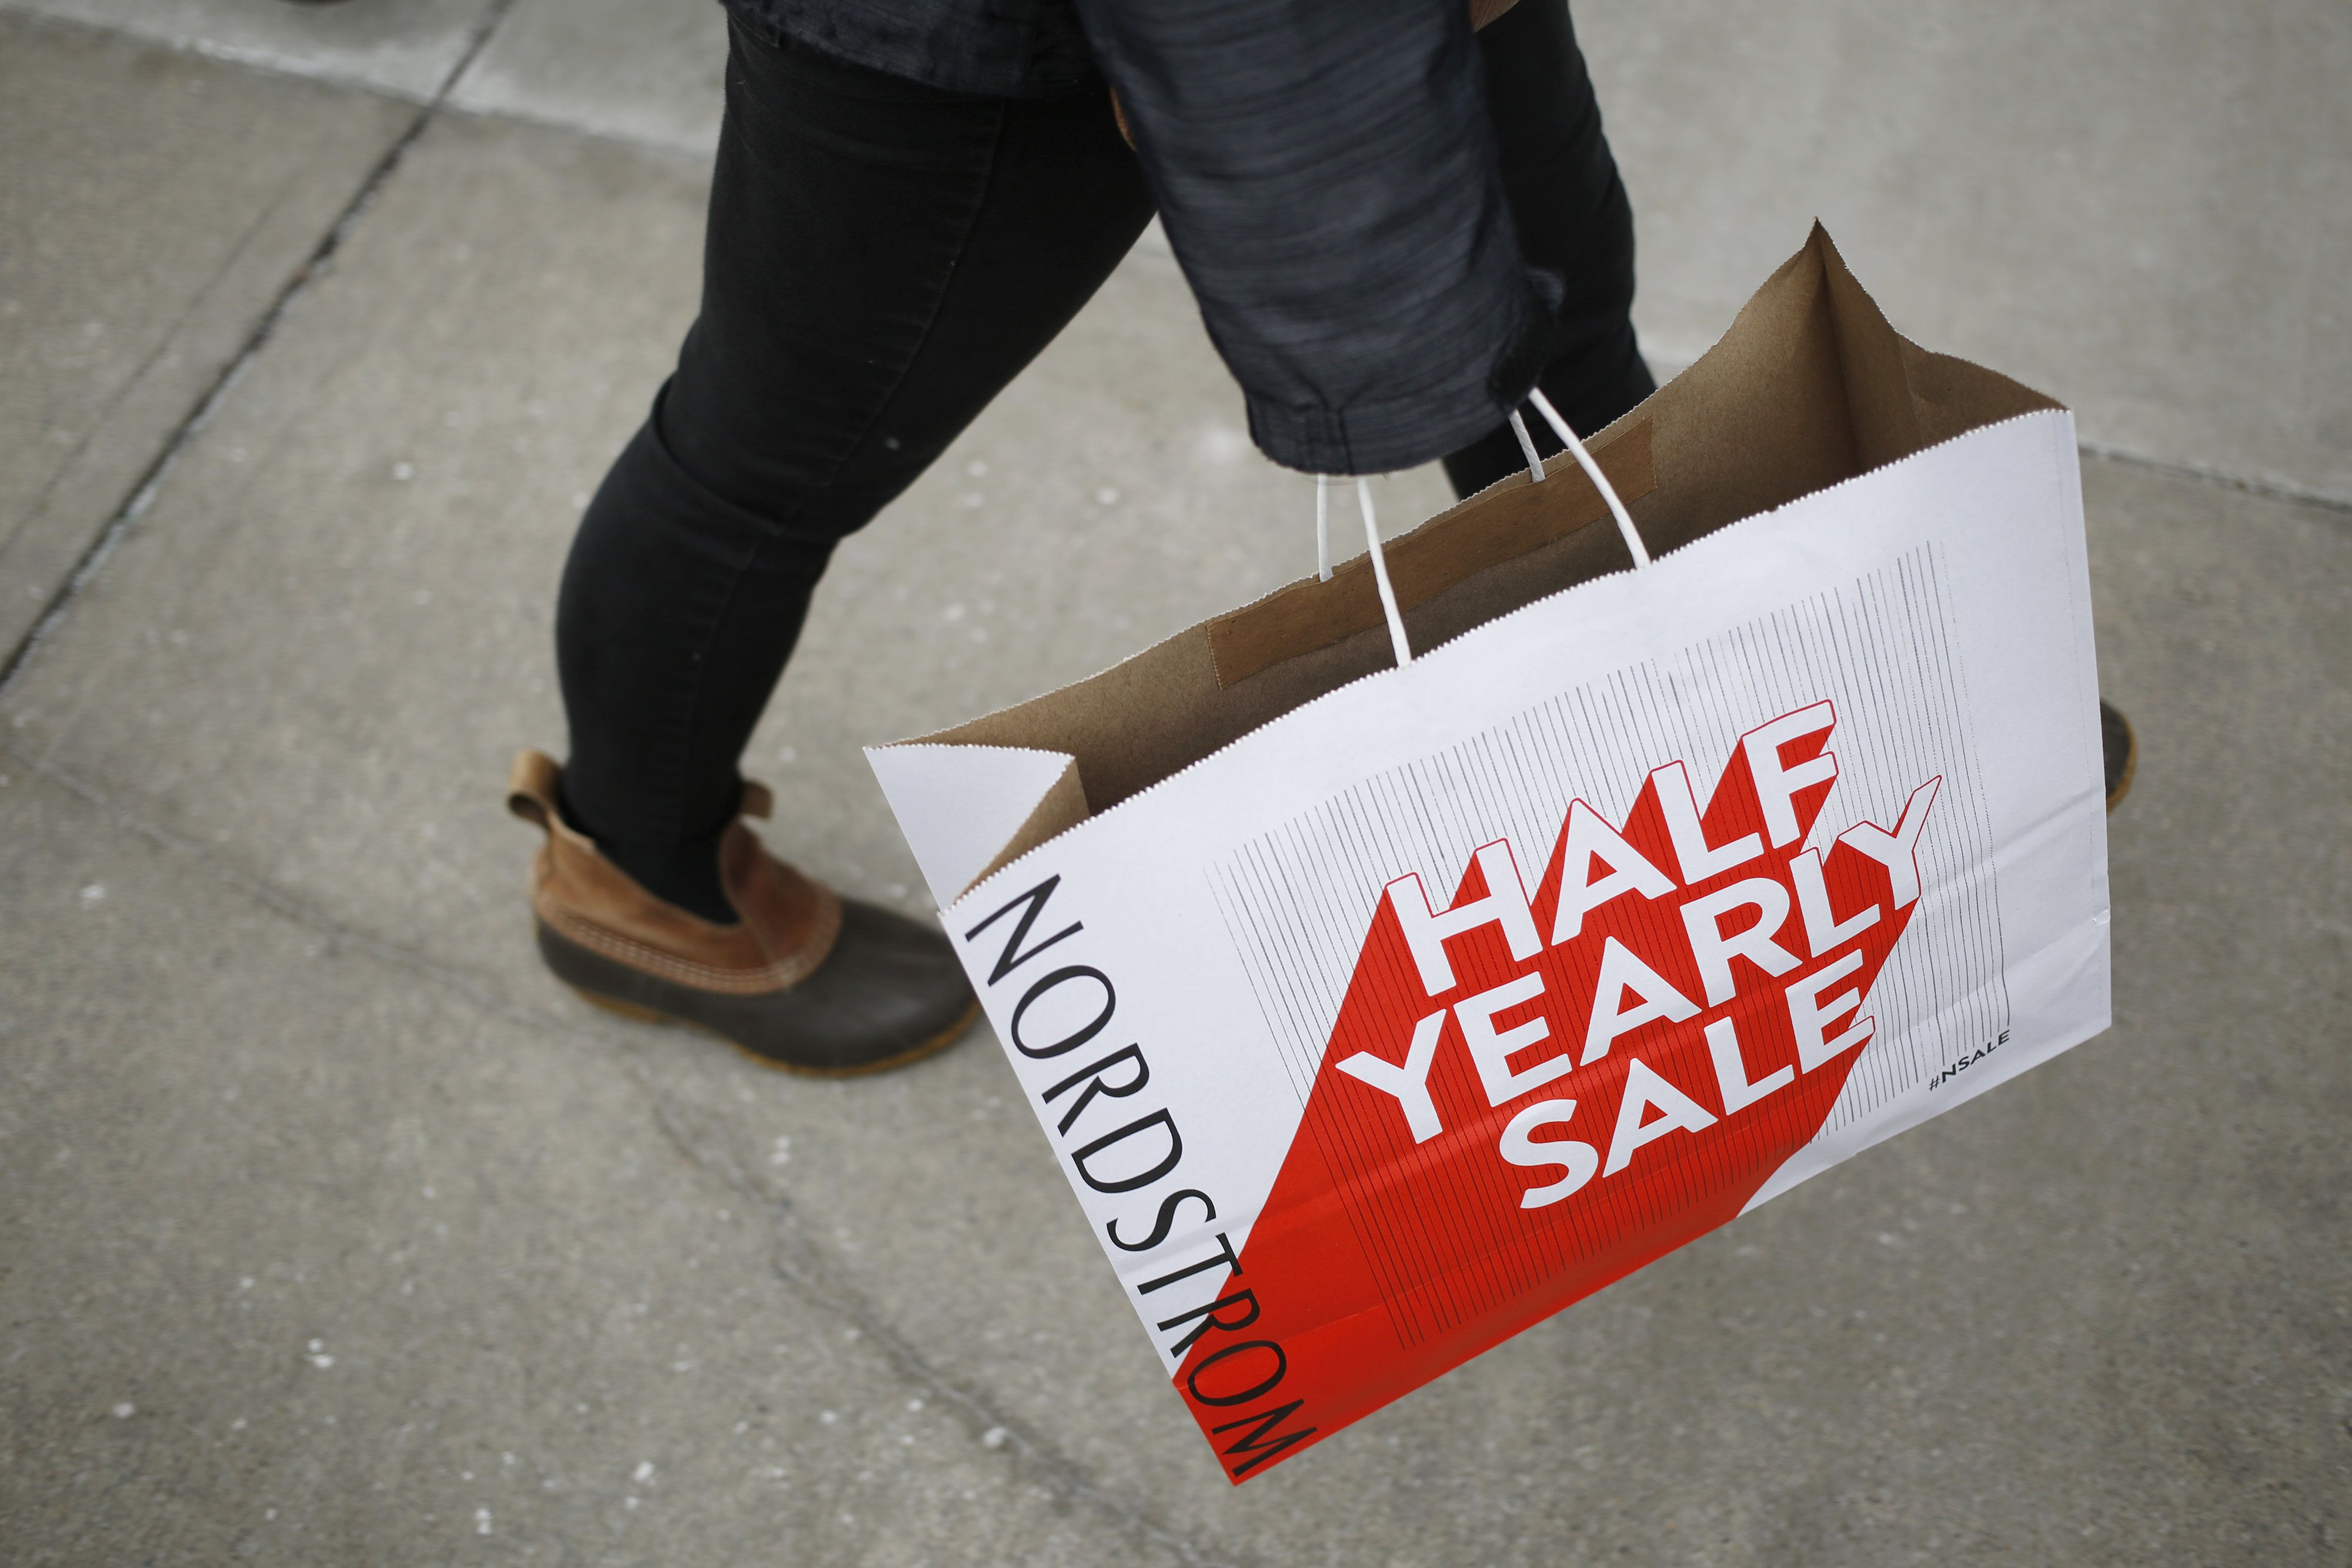 A shopper carries a Nordstrom Inc. bag at the Easton Town Center Mall in Columbus, Ohio, U.S., on Tuesday, Dec. 26, 2017. Americans displayed their buying bona fides in the final run-up to Christmas, turning out in force to produce what may be the best holiday shopping season in years. Photographer: Luke Sharrett/Bloomberg via Getty Images